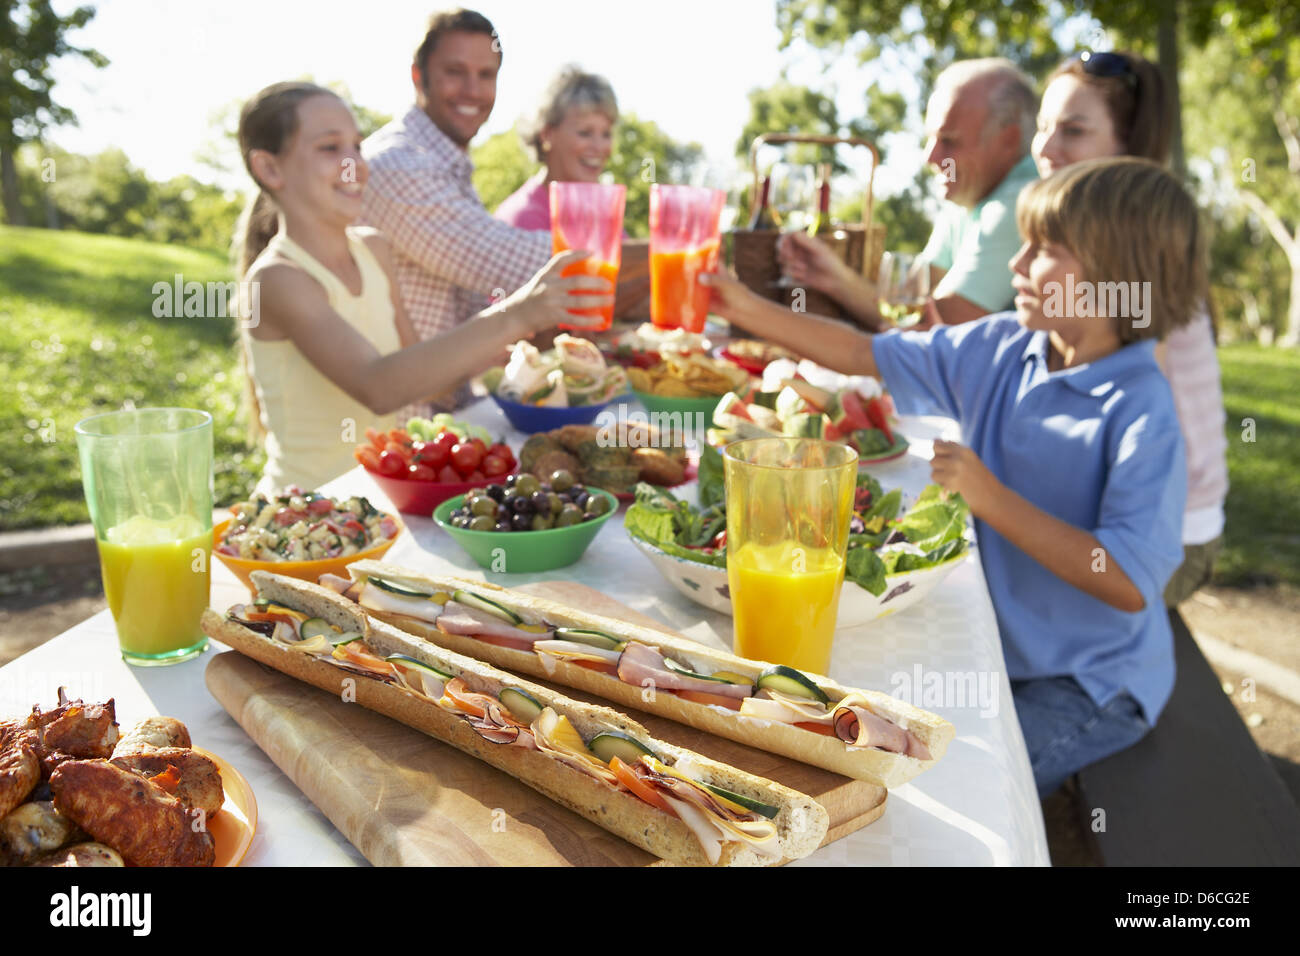 Picknick Essen Liste Family Fests Stock Photos & Family Fests Stock Images - Alamy